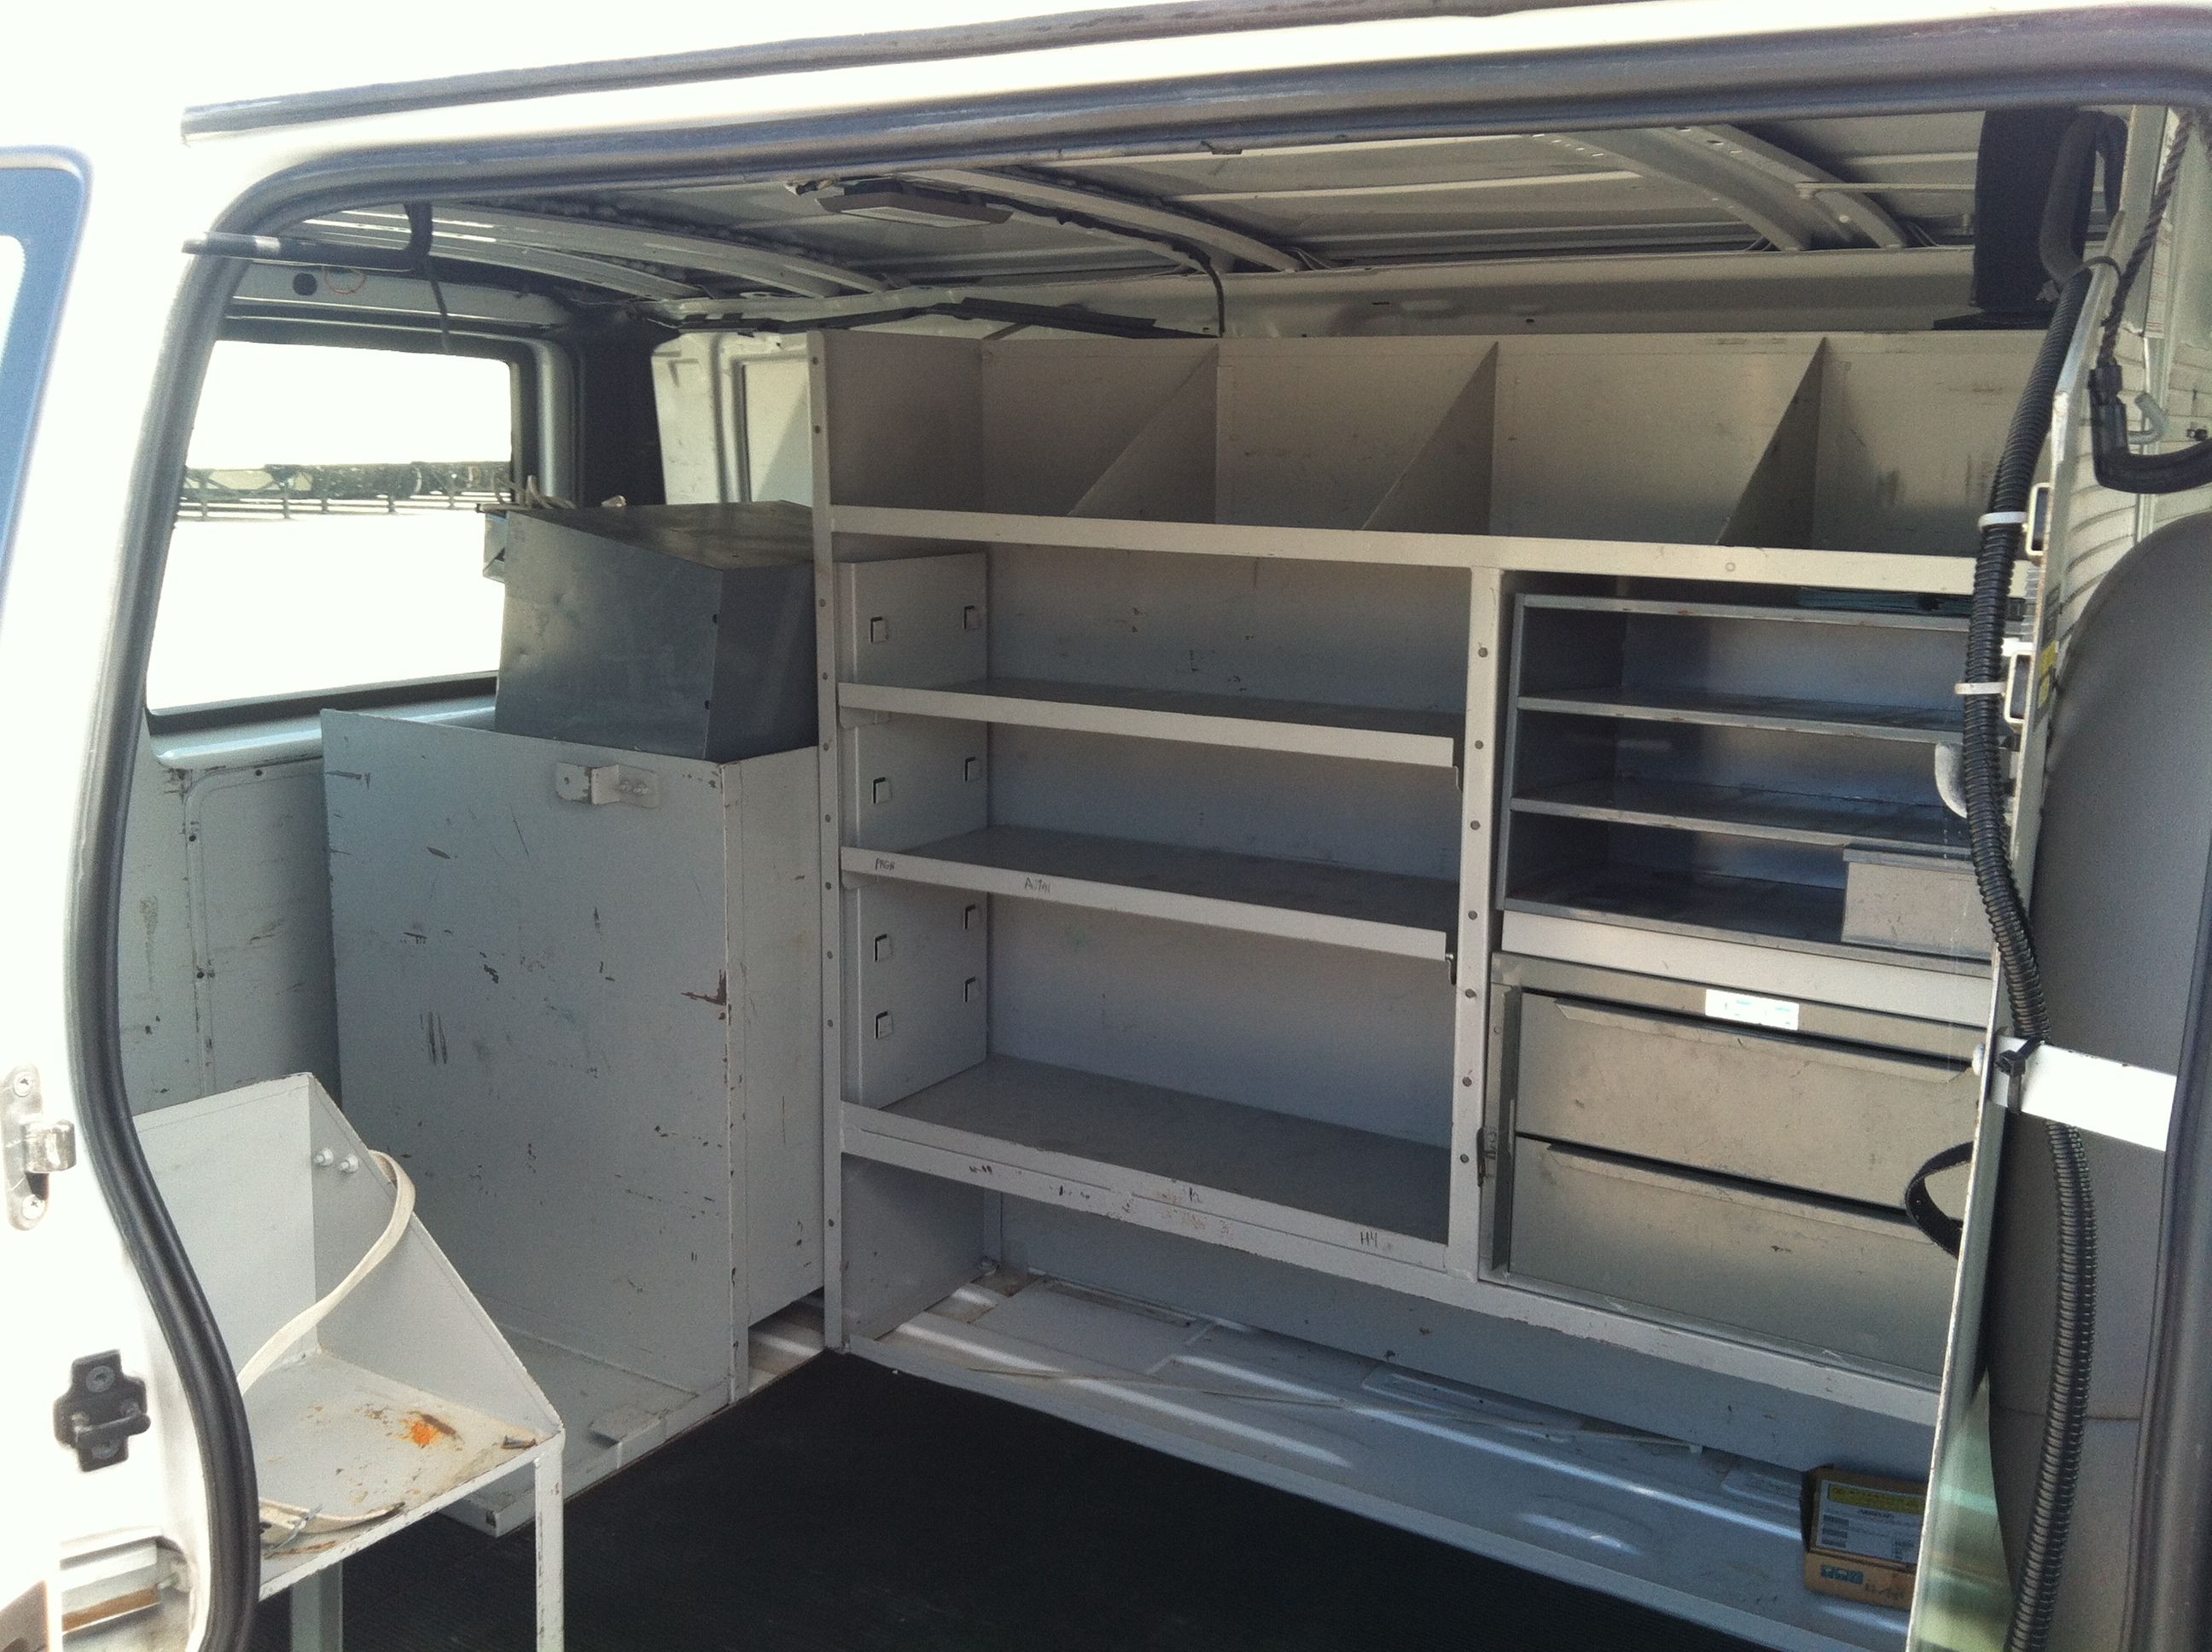 The Aluminum Shelves Will Hold Alot Of Stuff Here Living In A